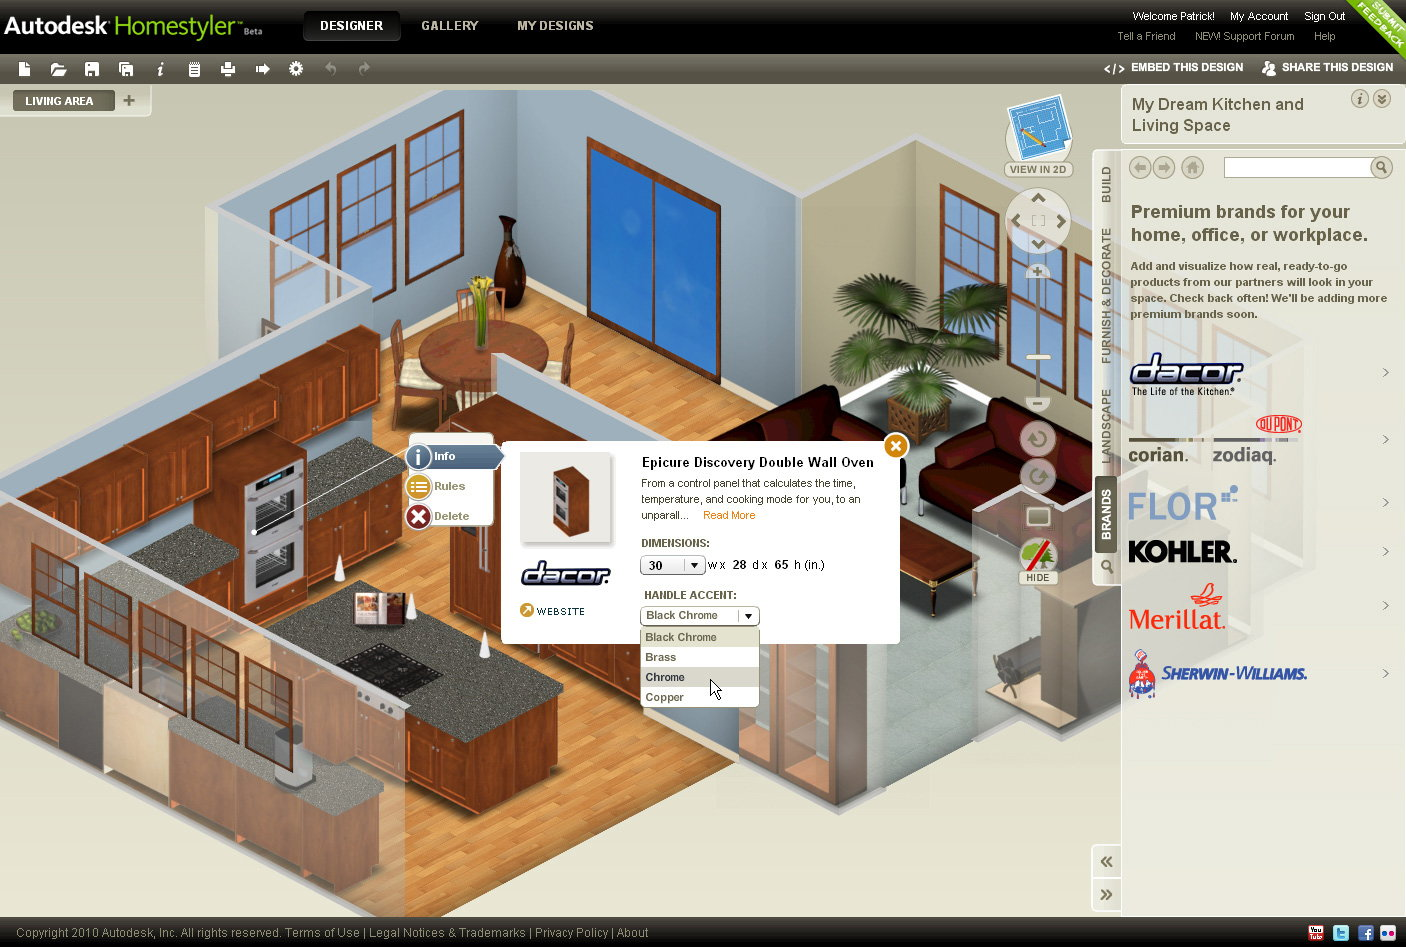 Autodesk Homestyler: Easy To Use, Free 2D And 3D Online Home Design Software